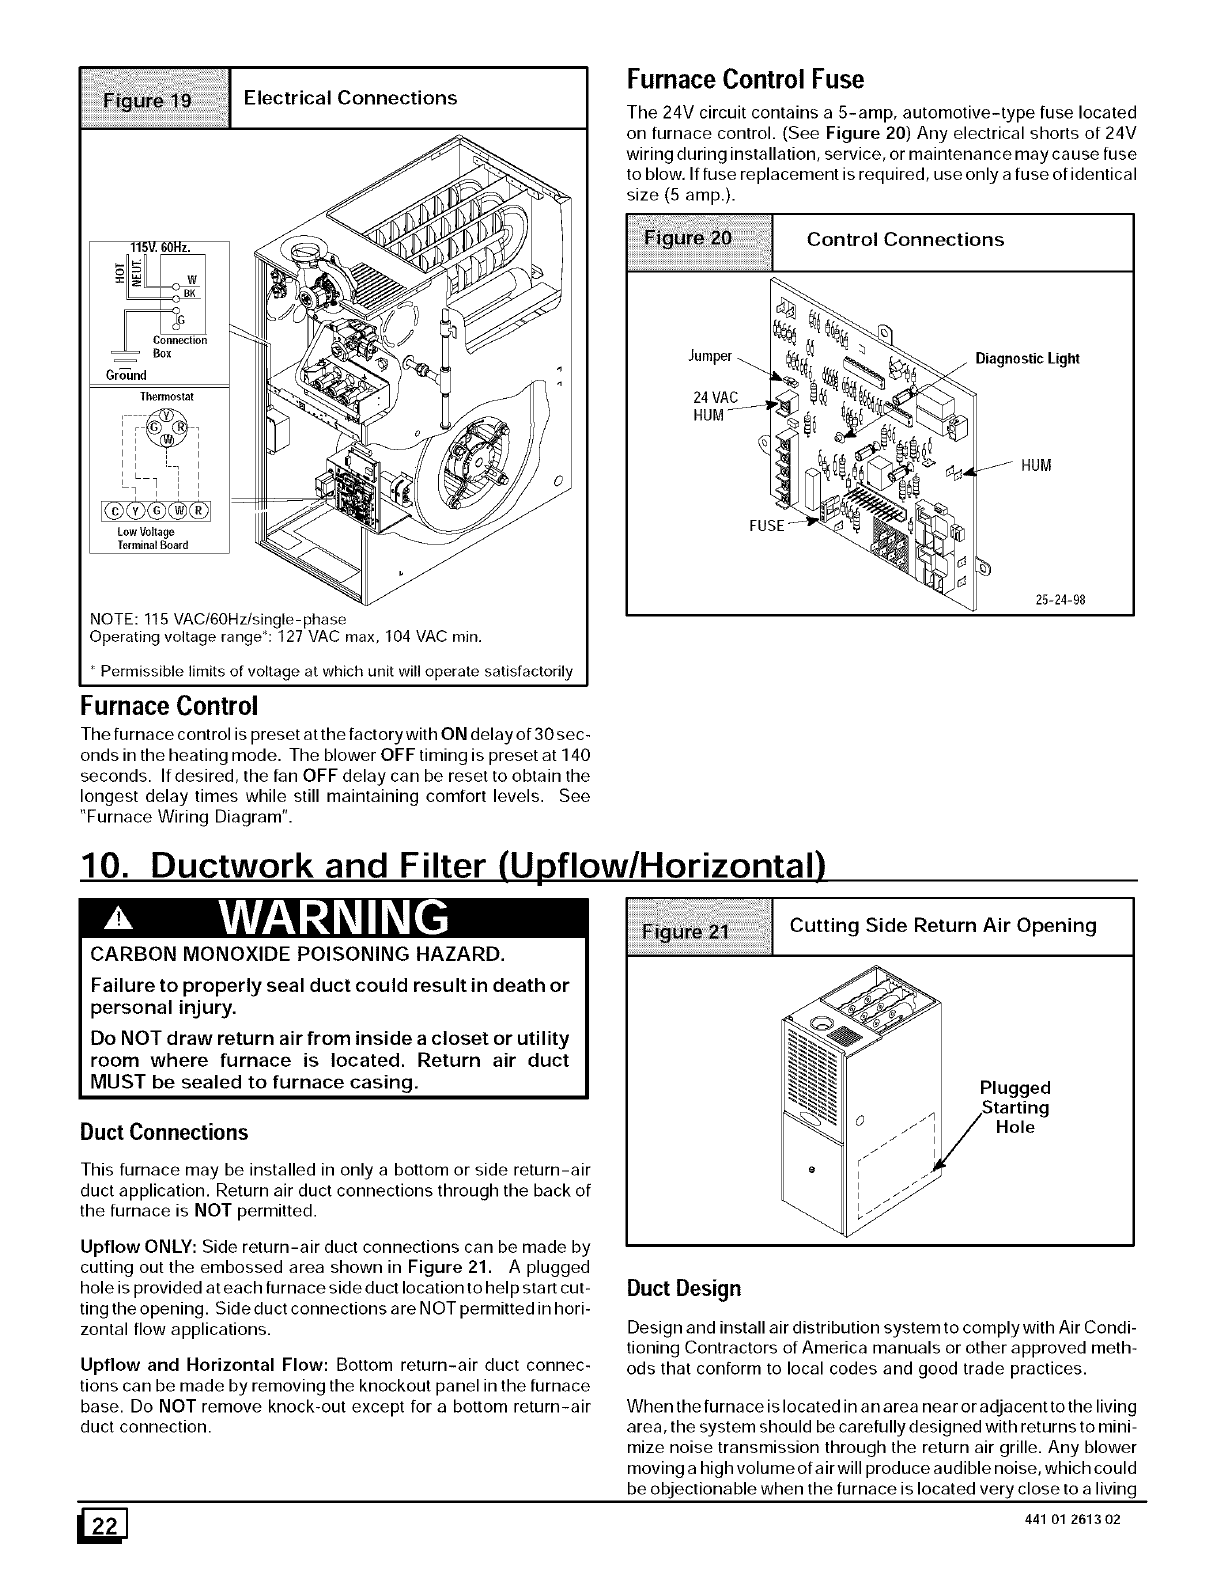 Sears Treadmill Motor Wiring Diagram 1998 Trusted Diagrams Furnace Block And Schematic Manufactured Home Circuit